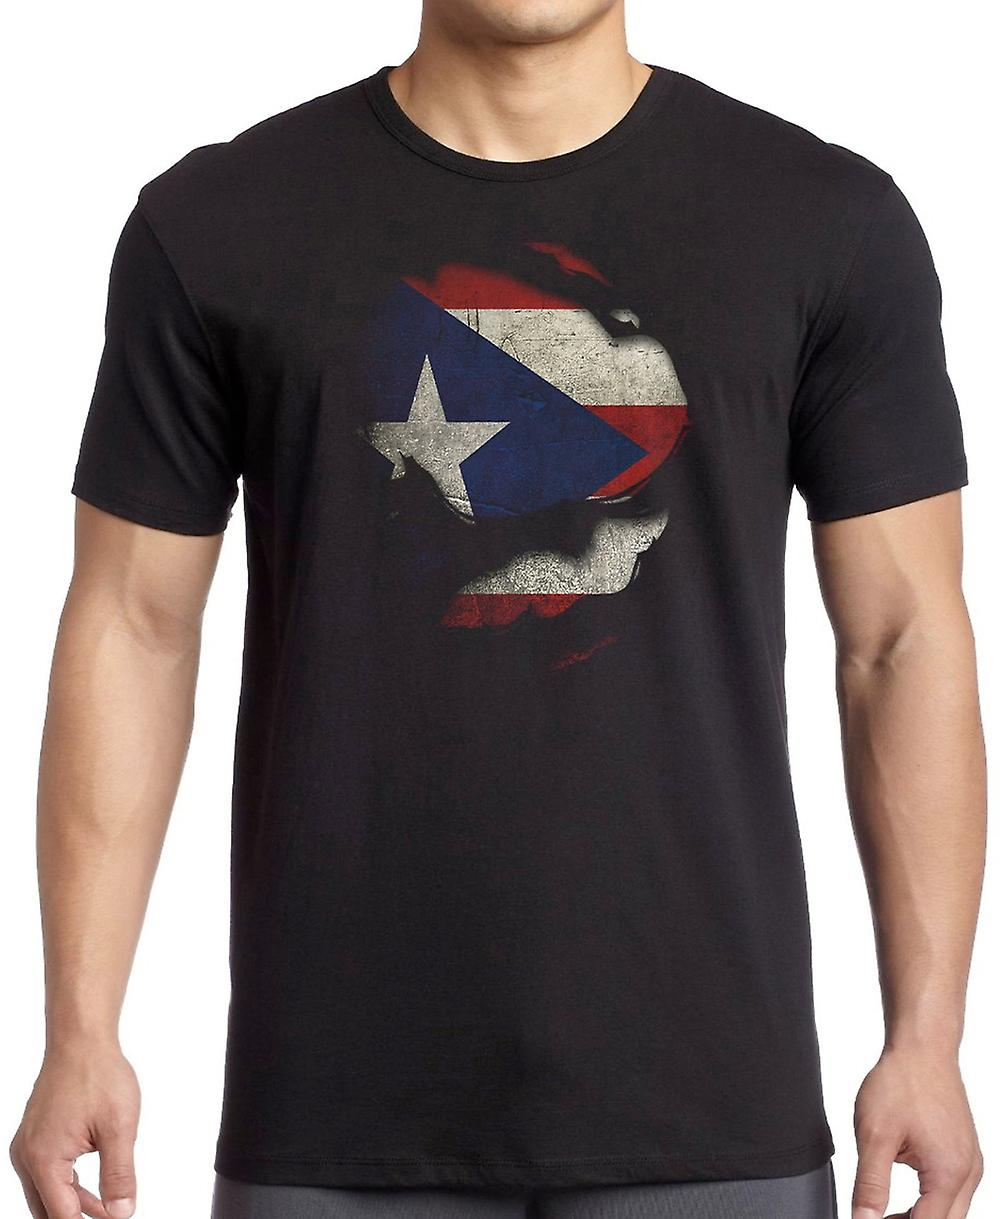 Puerto Rico Ripped Effect Under Shirt T Shirt